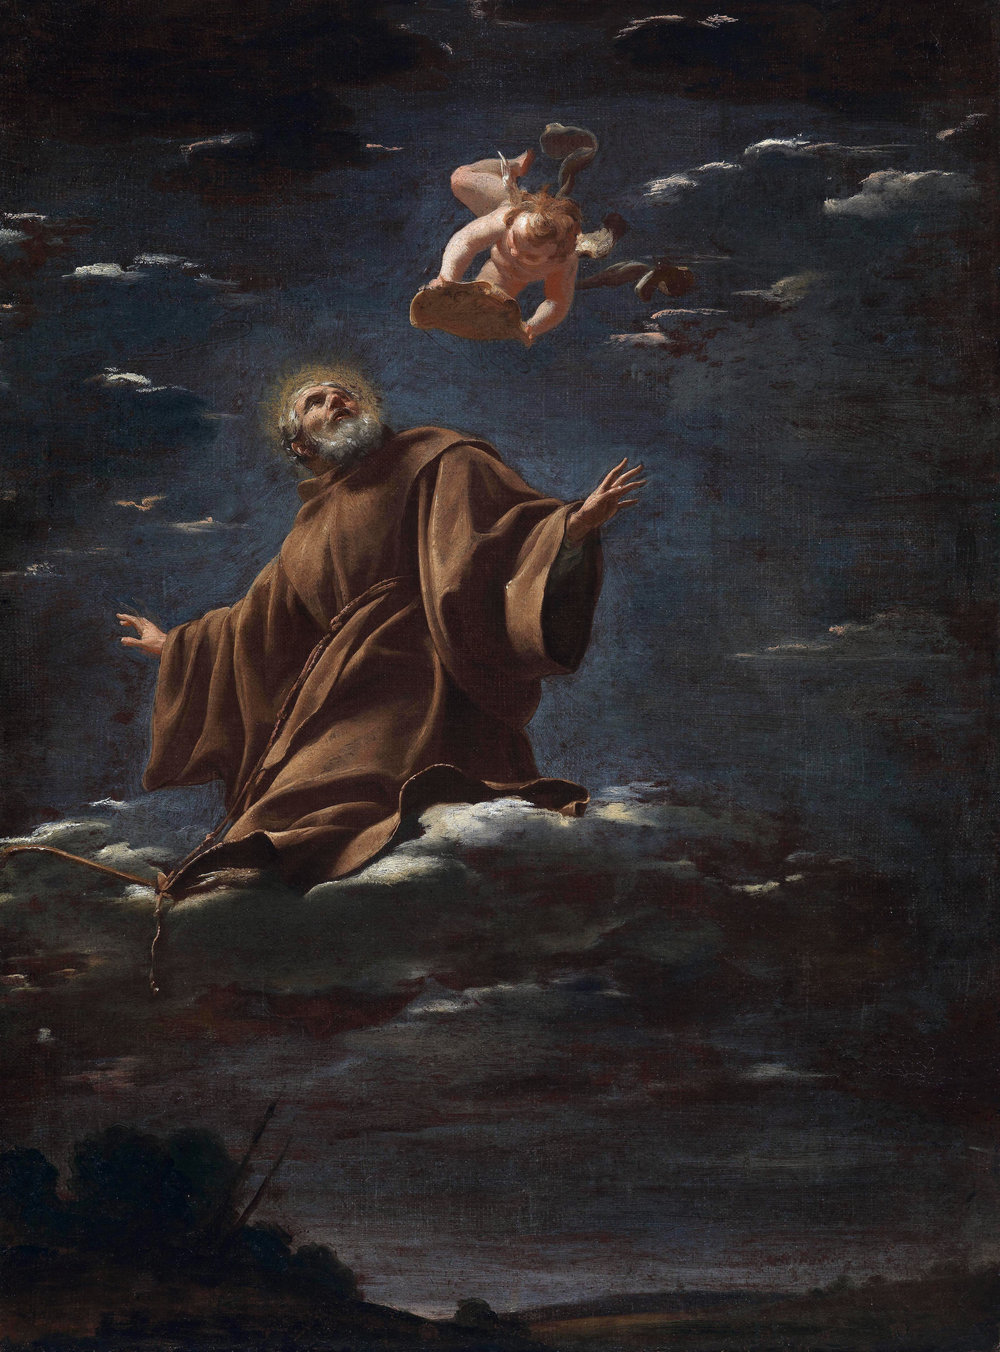 SIMON VOUET  Paris, 1590 - 1649         Apotheosis of Saint Francis of Paola   Circa 1625-1626        Oil on canvas  65 x 48 cm.        Sold to a private collection, Europe